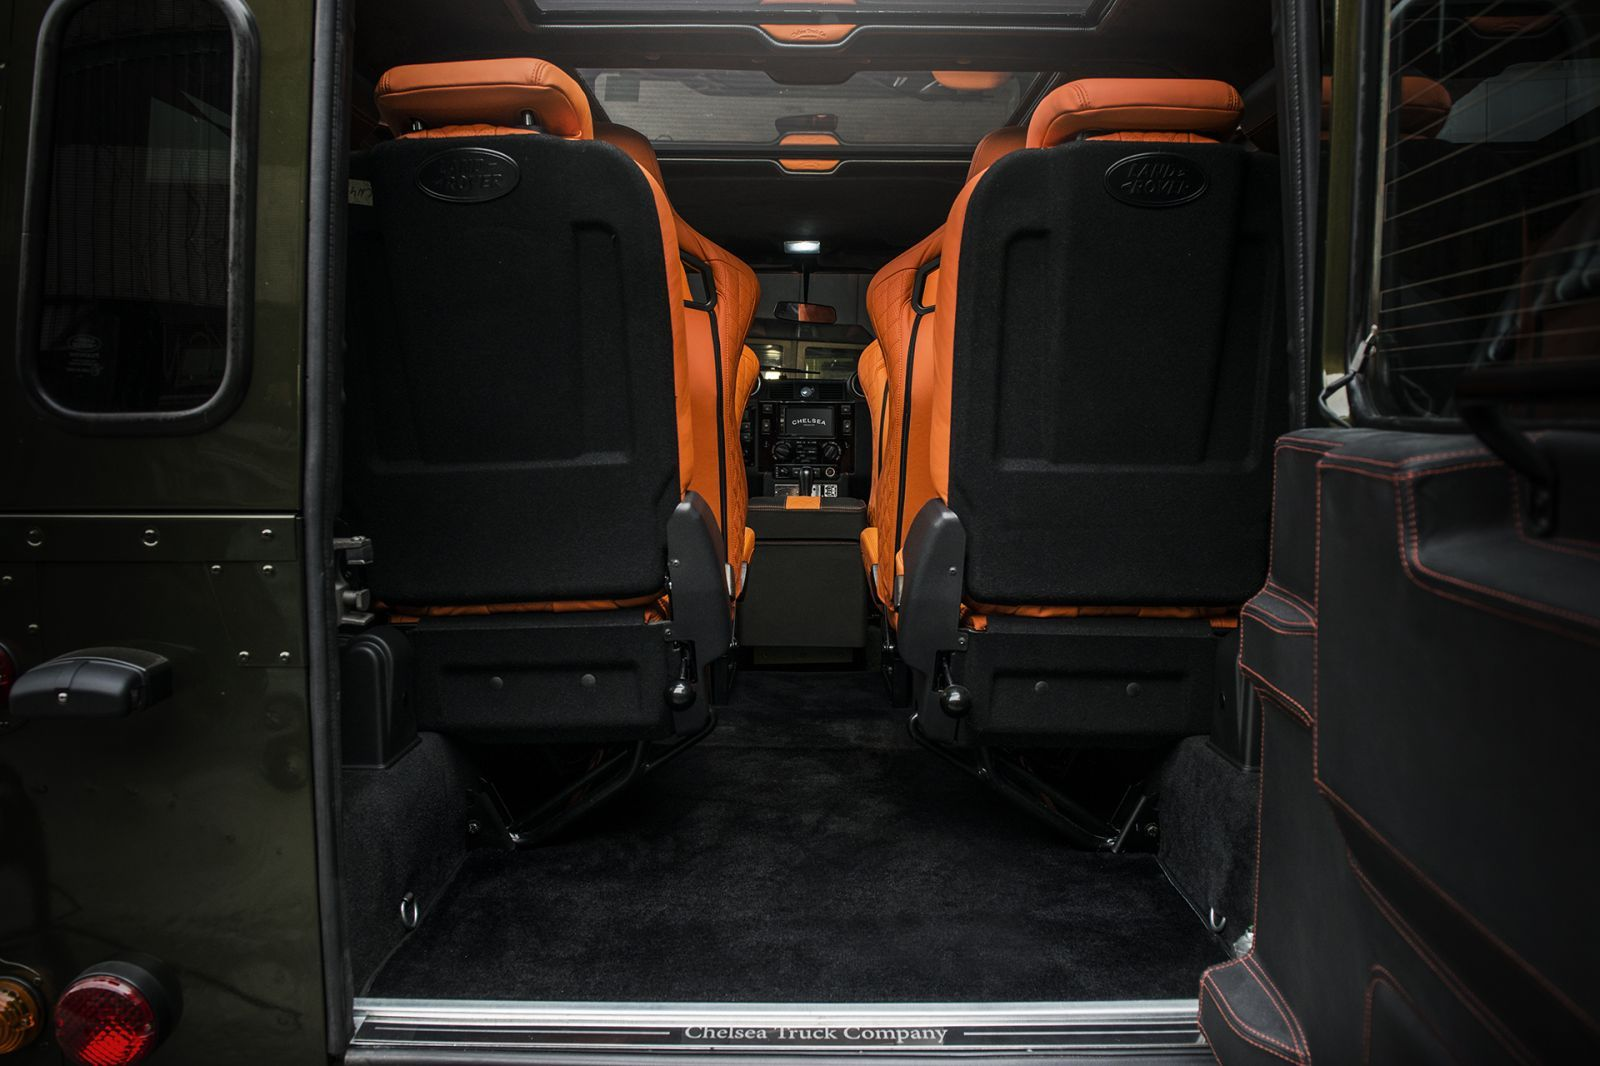 Land Rover Defender 90 (1991-2016) Floor Carpet by Chelsea Truck Company - Image 765